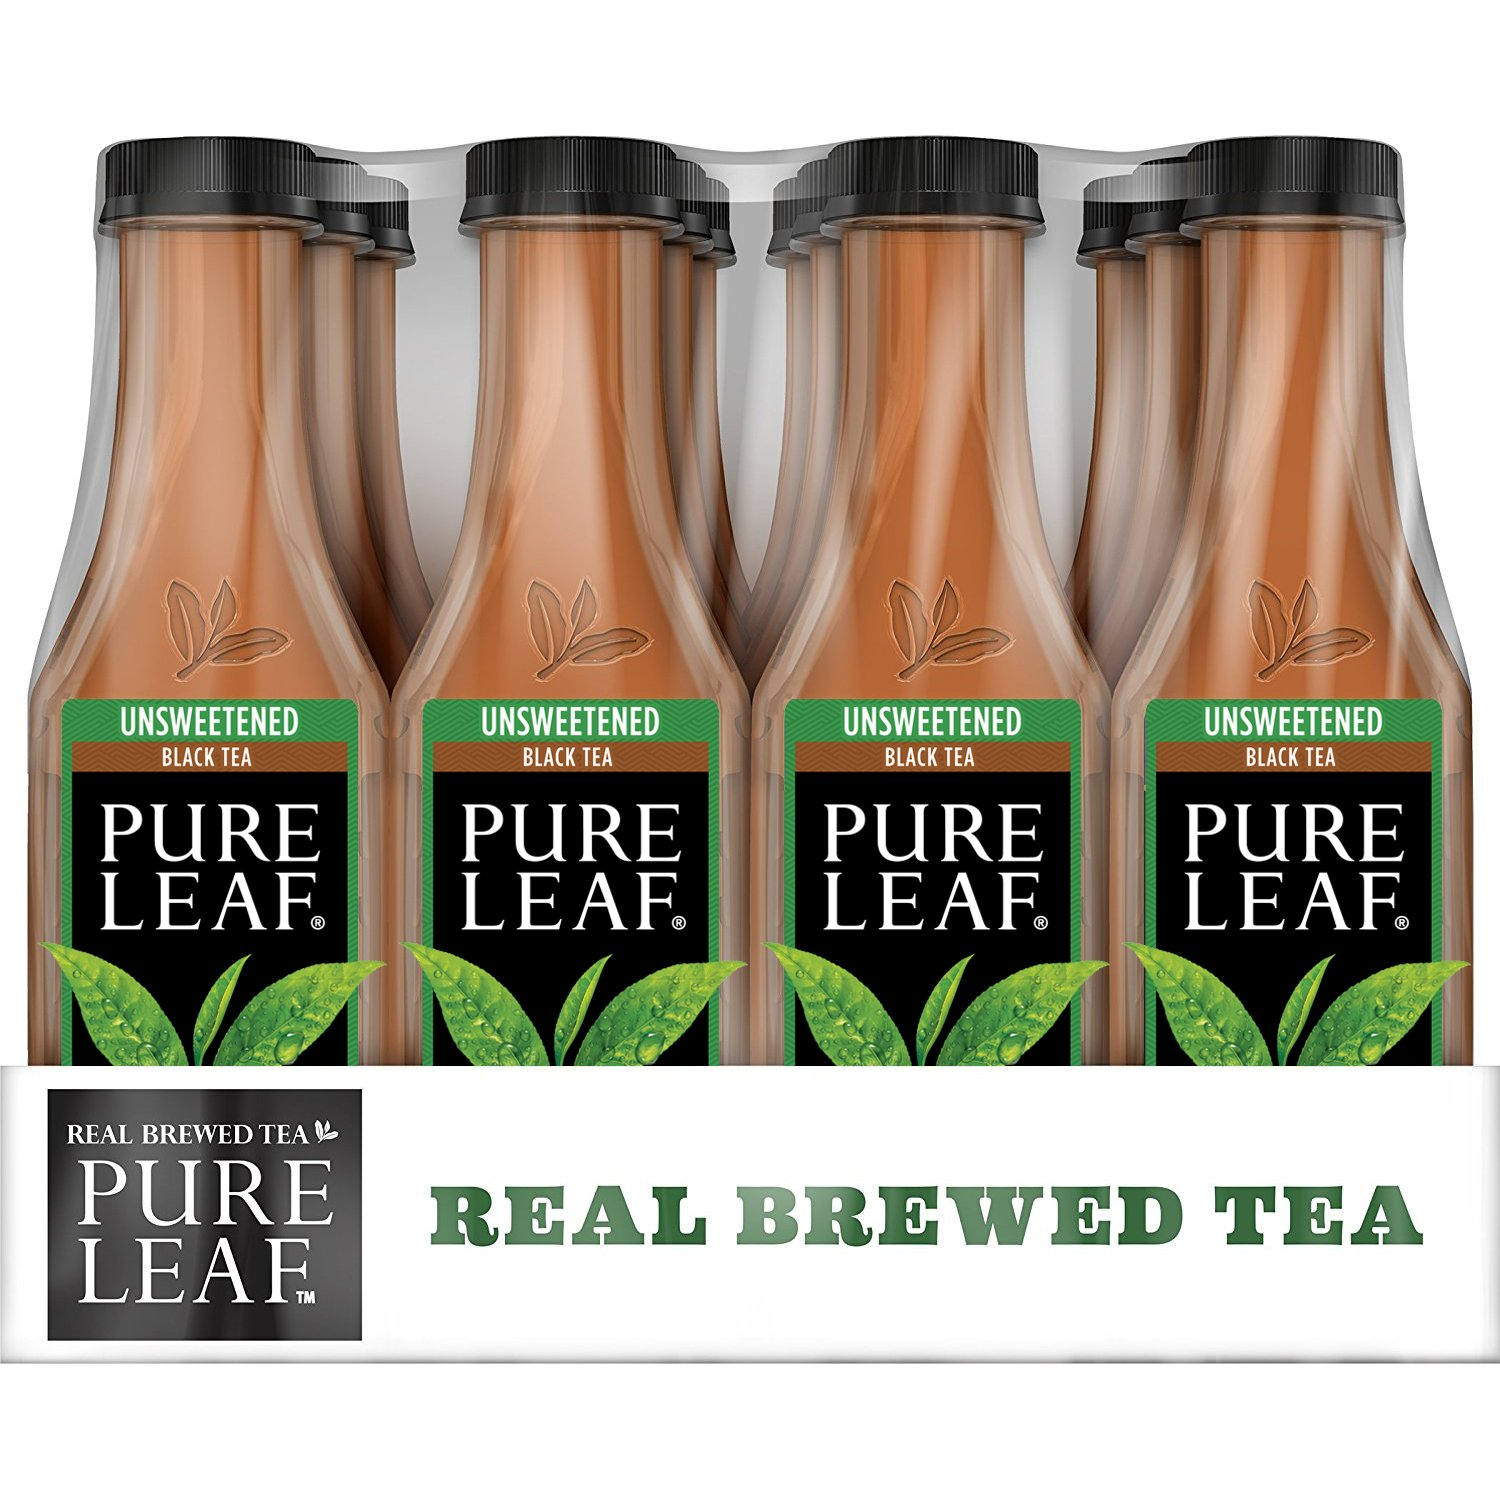 Pure Leaf Iced Tea, Unsweetened, Real Brewed Black Tea, 0 Calories, 18.5 Fl Oz, Pack of 12 by Pure Leaf